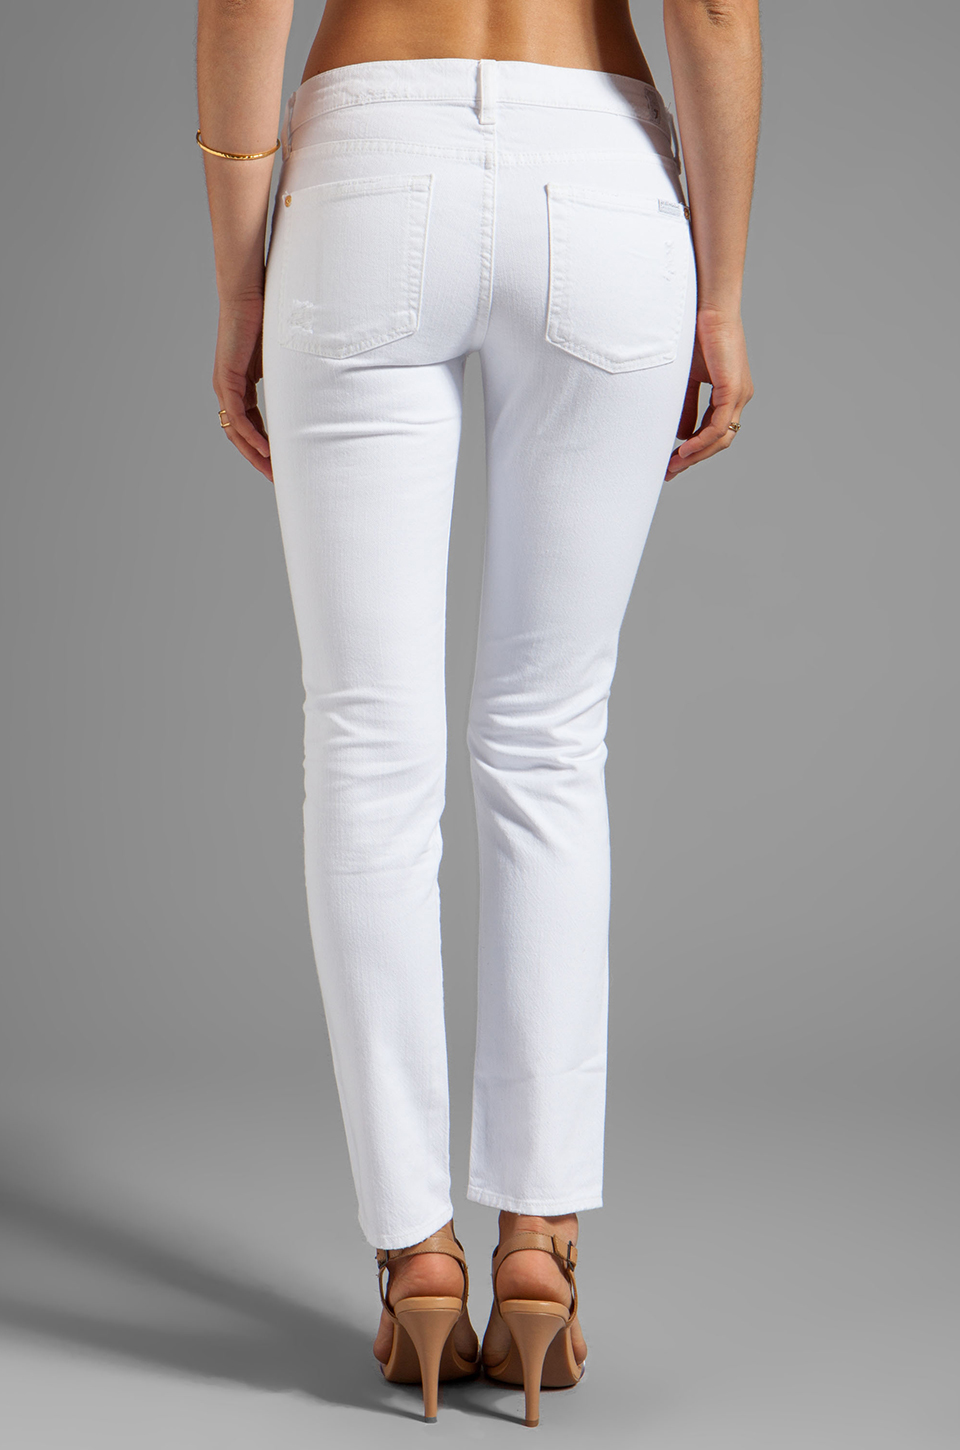 7 For All Mankind The Slim Cigarette in White Destroyed